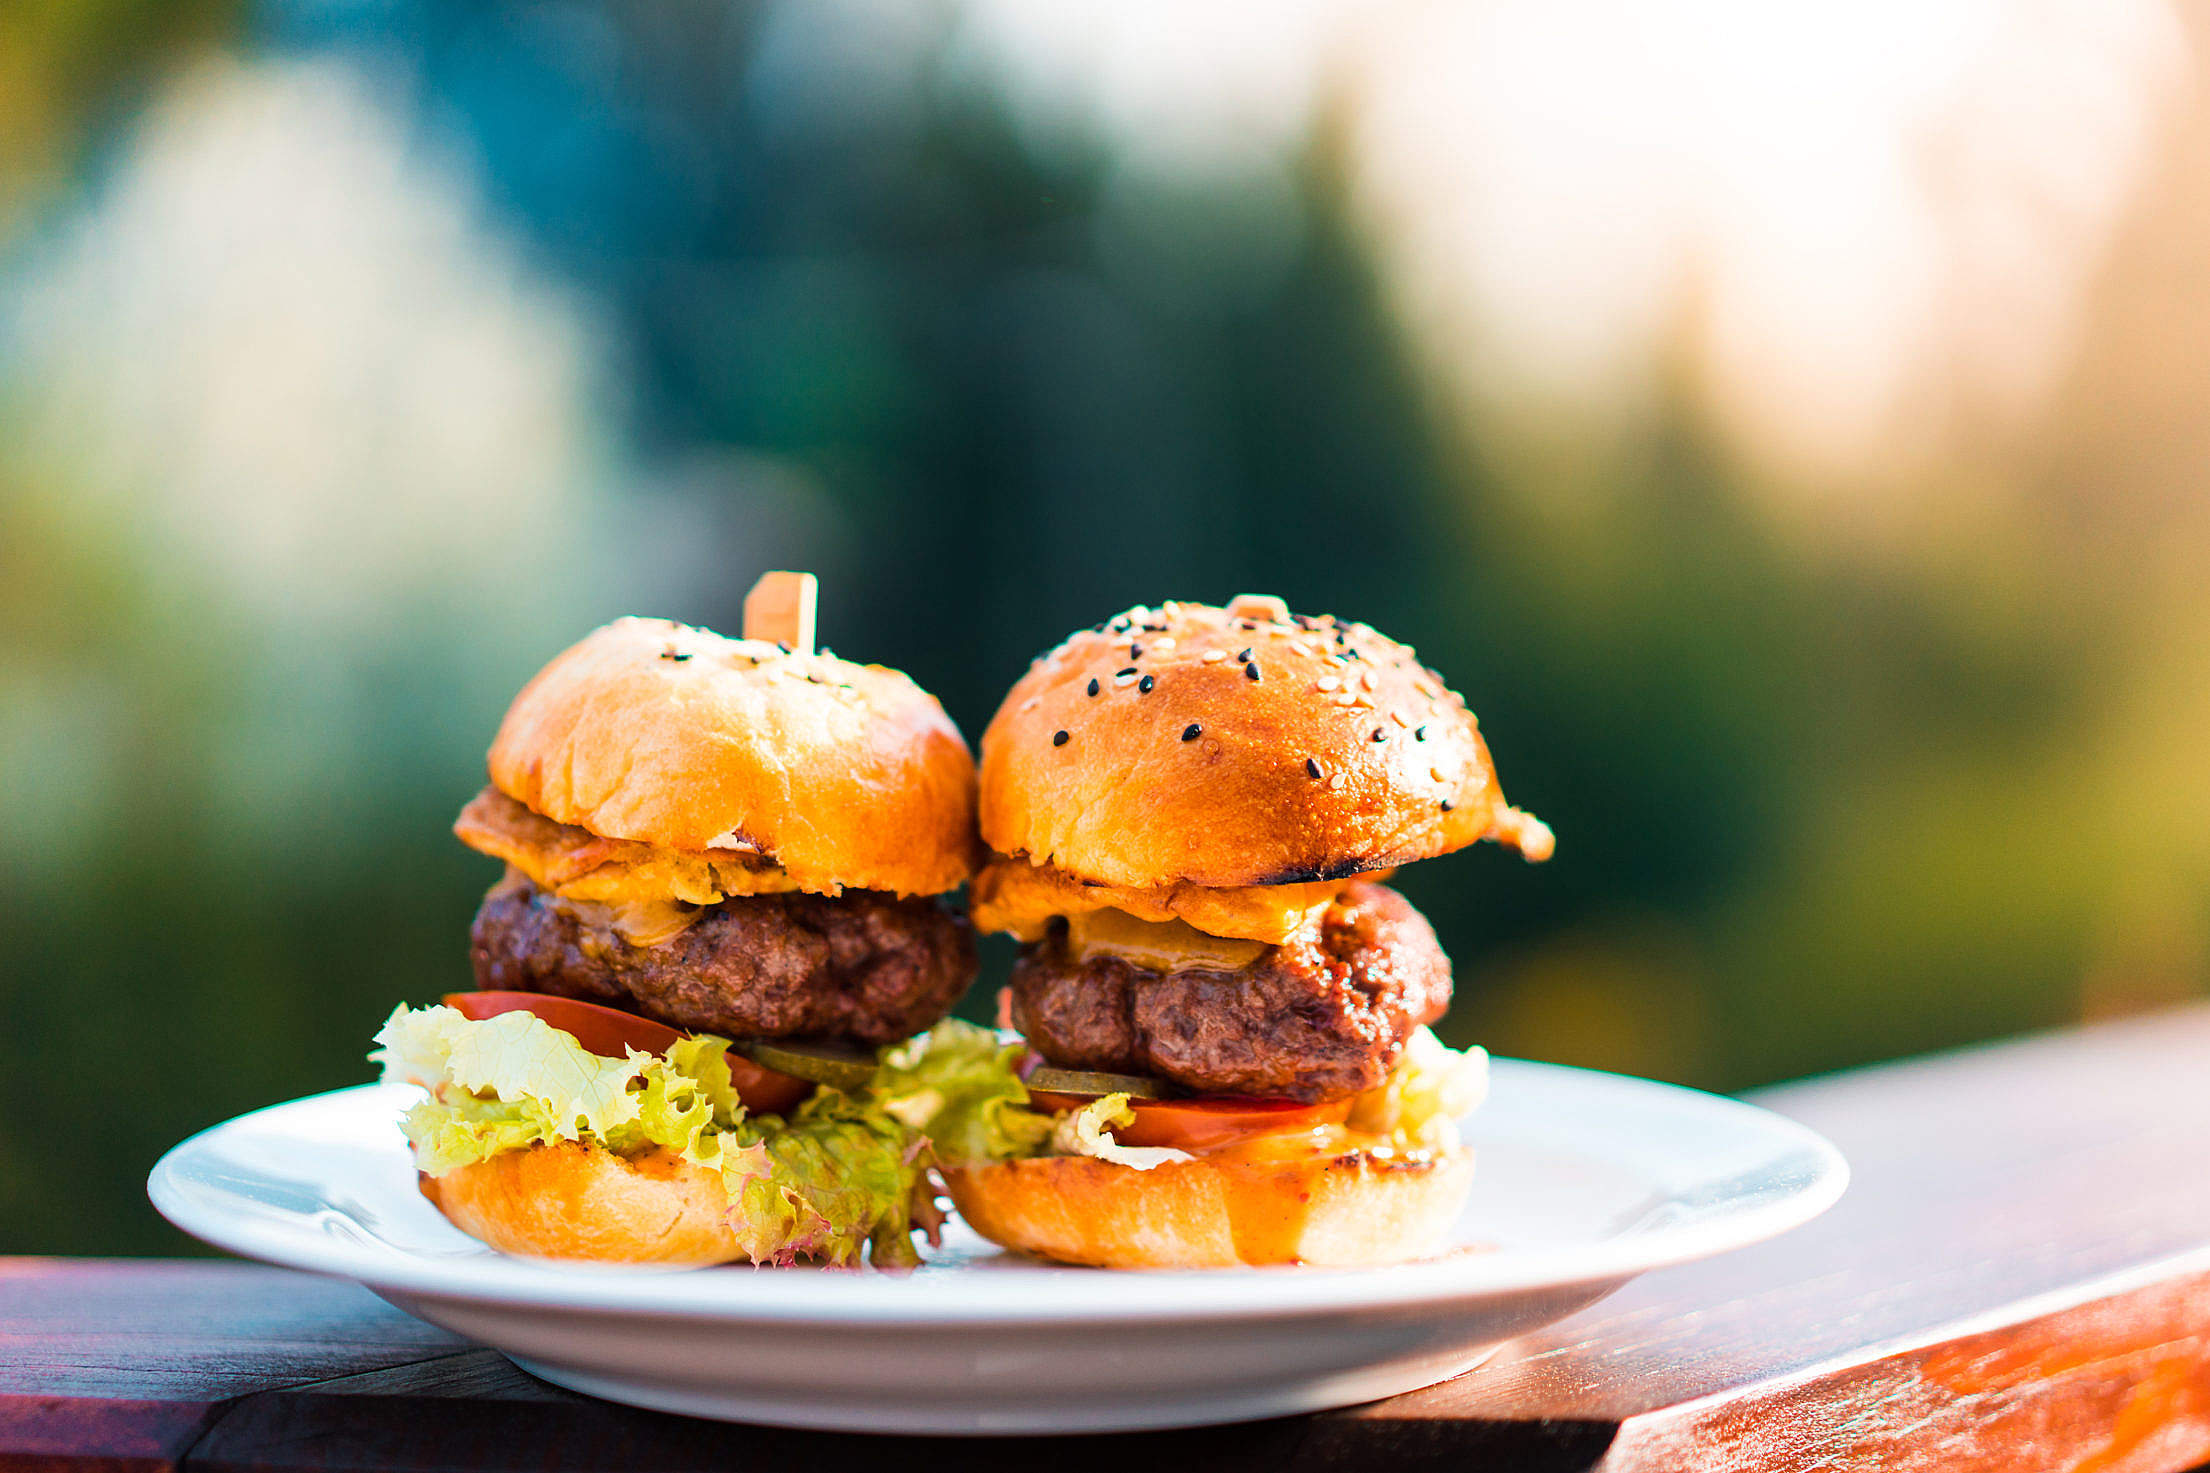 Mini Hamburgers Free Stock Photo